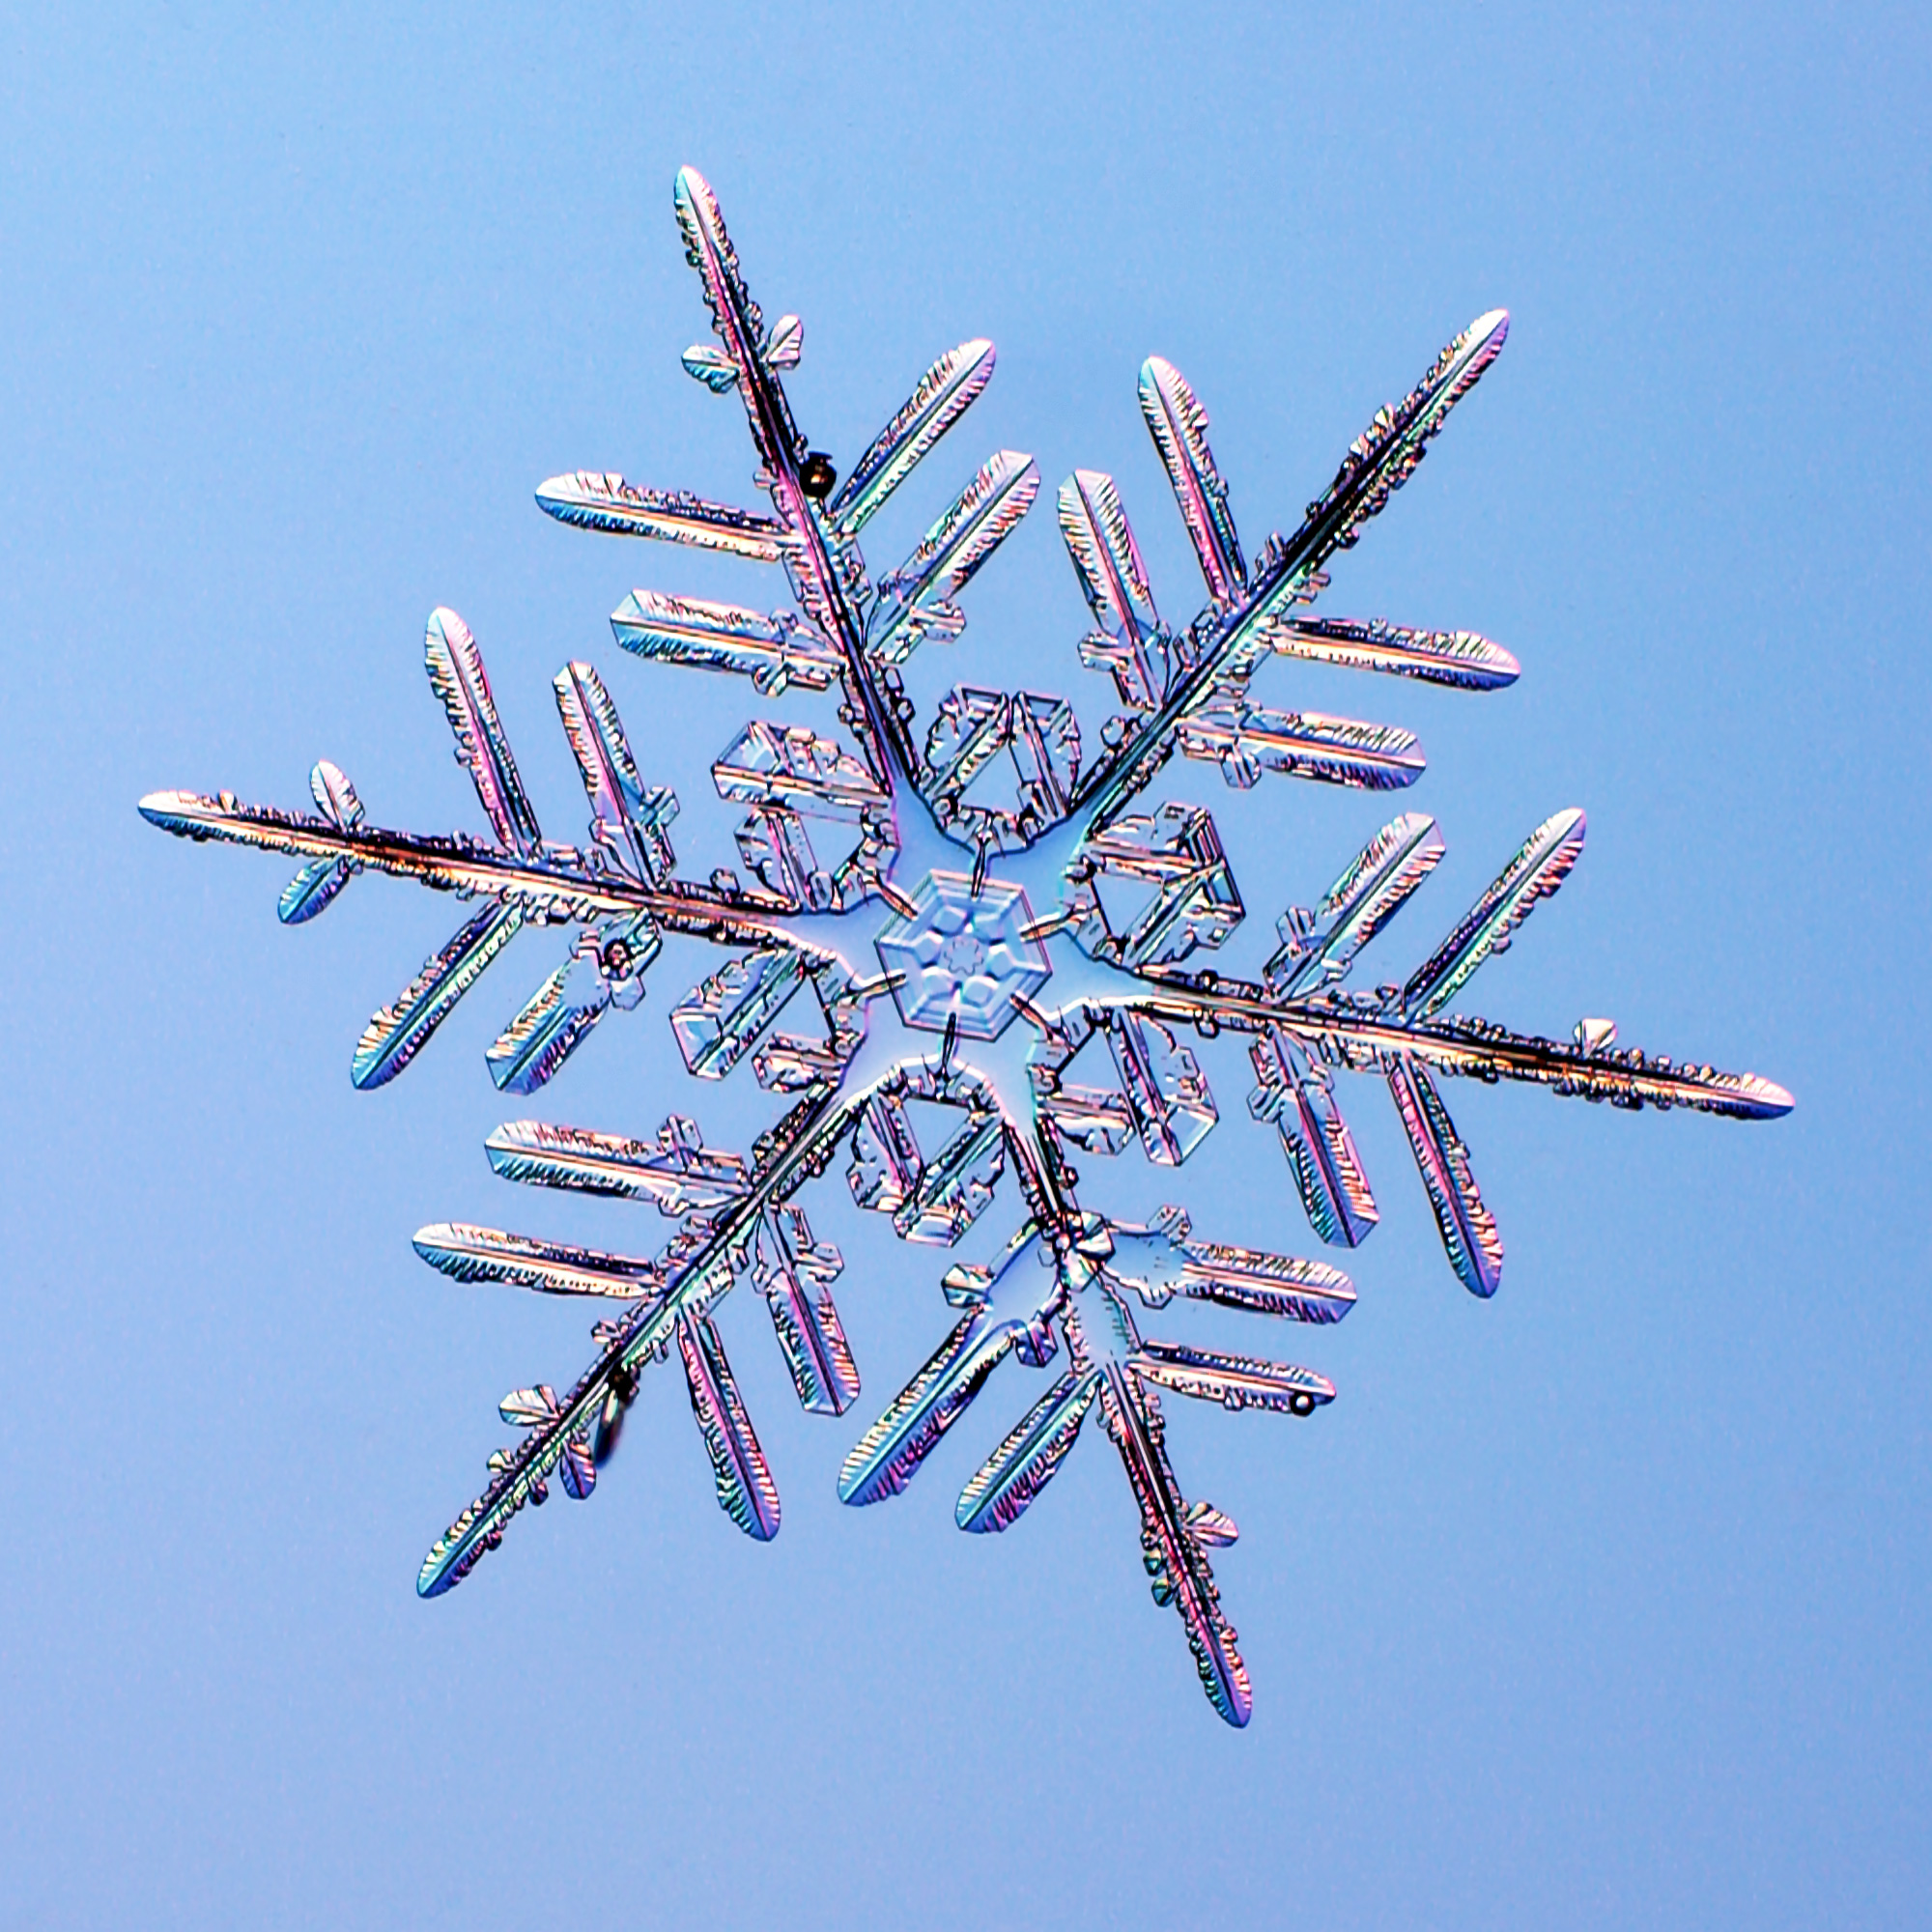 One of three close-up images of star-like snowflakes on a blue background.